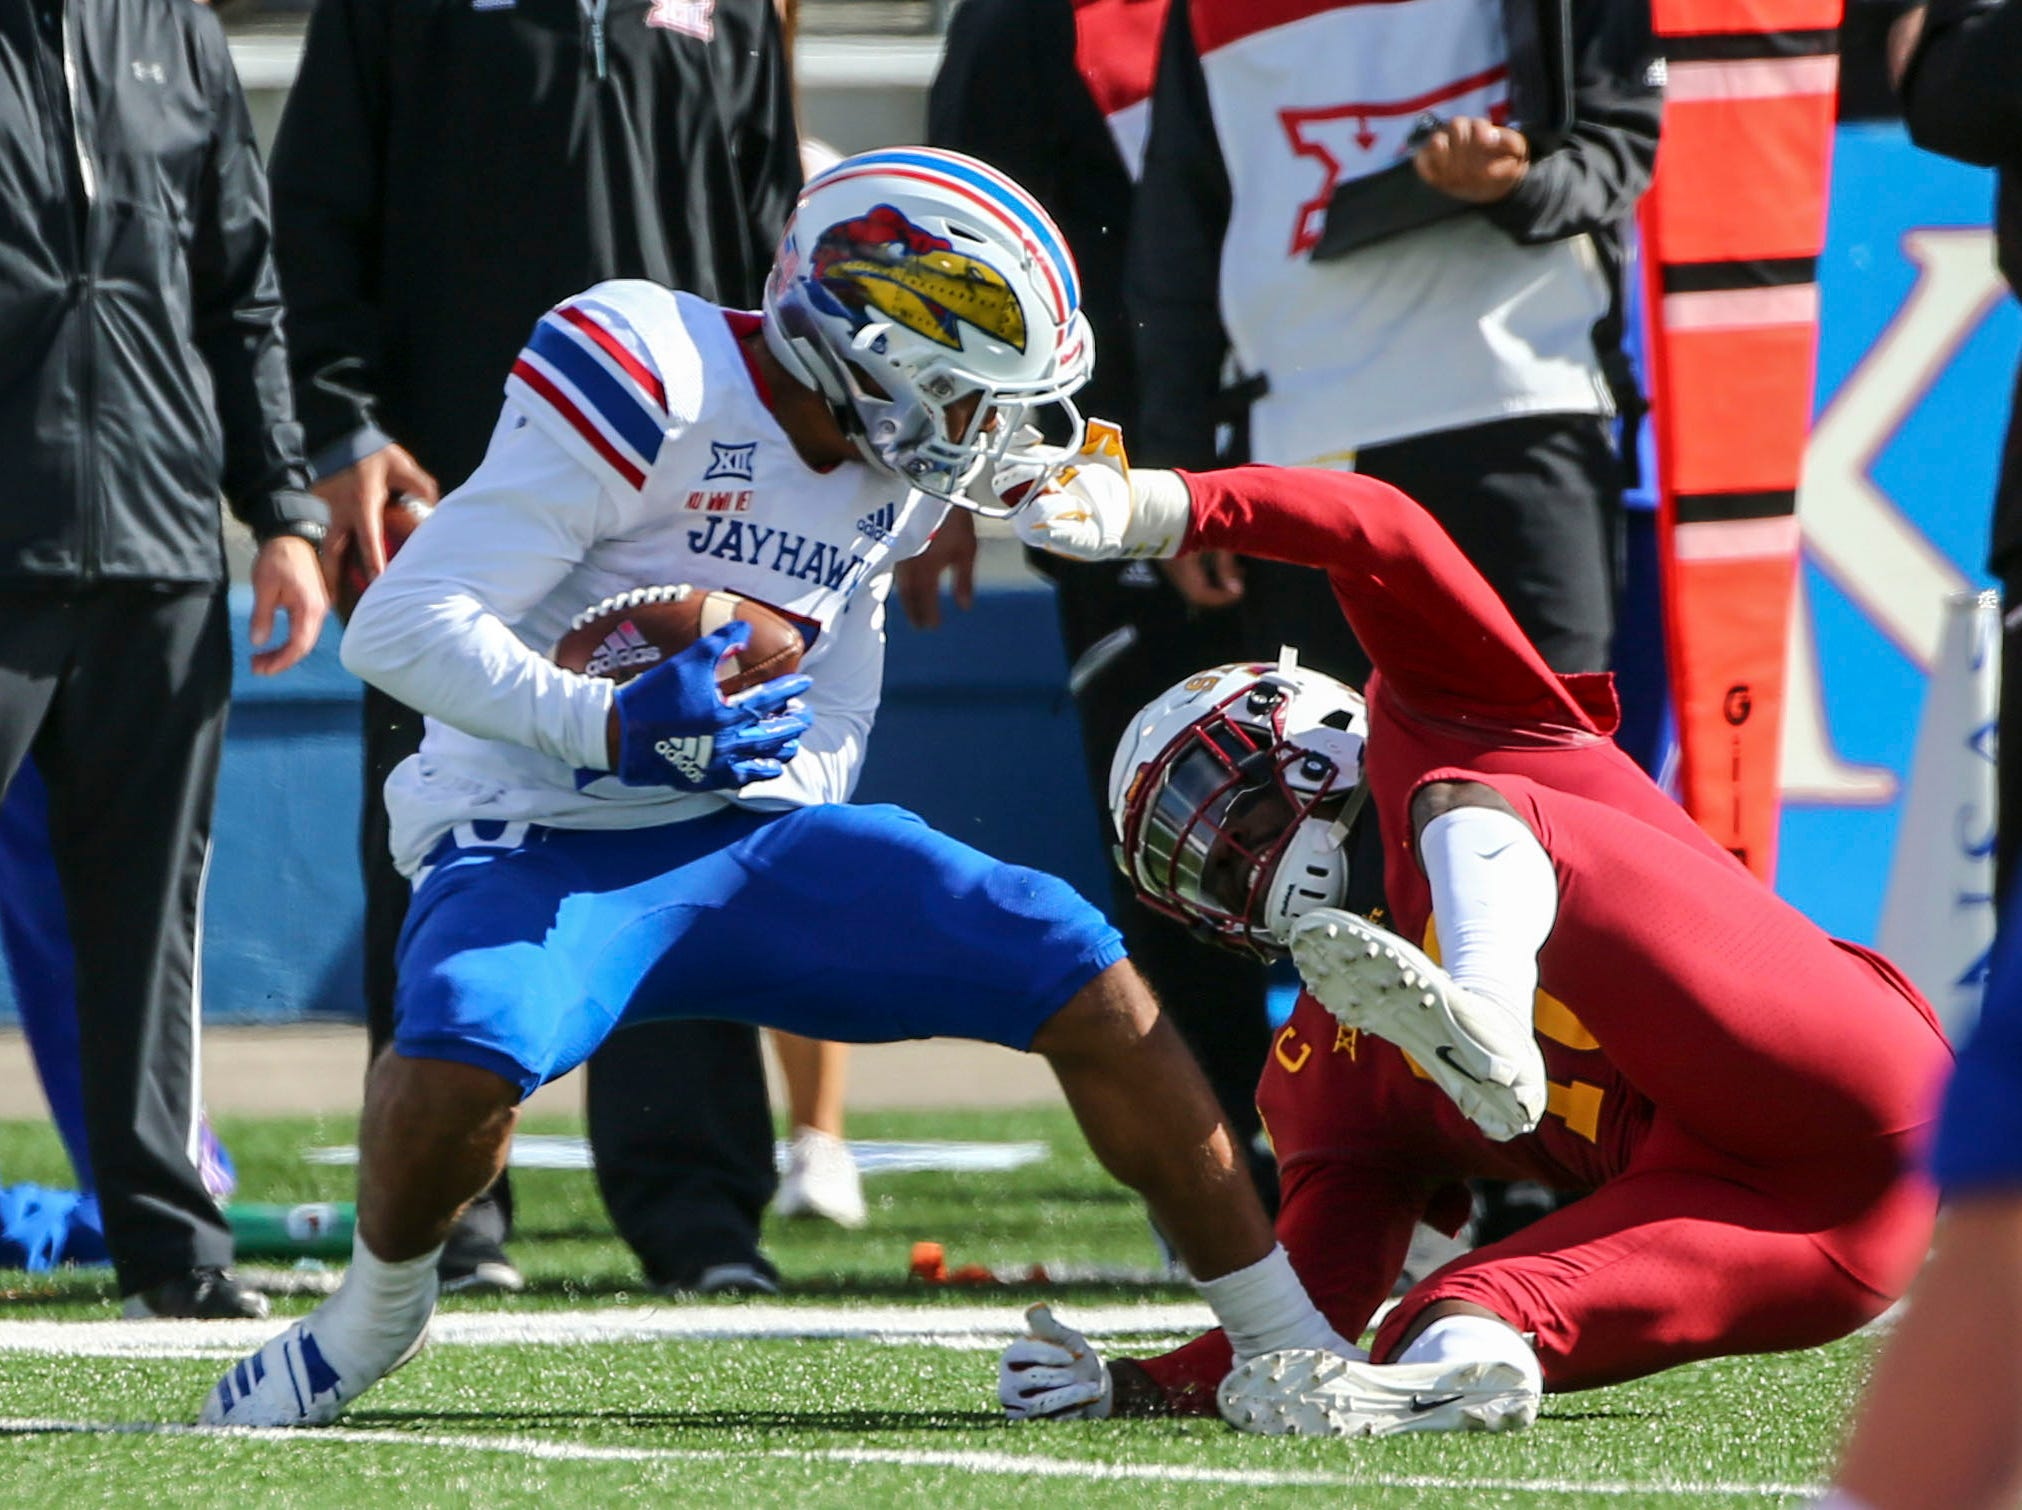 Kansas Jayhawks wide receiver Stephon Robinson (5) is grabbed by his facemask by Iowa State Cyclones defensive back Brian Peavy (10) in the second half at Memorial Stadium.